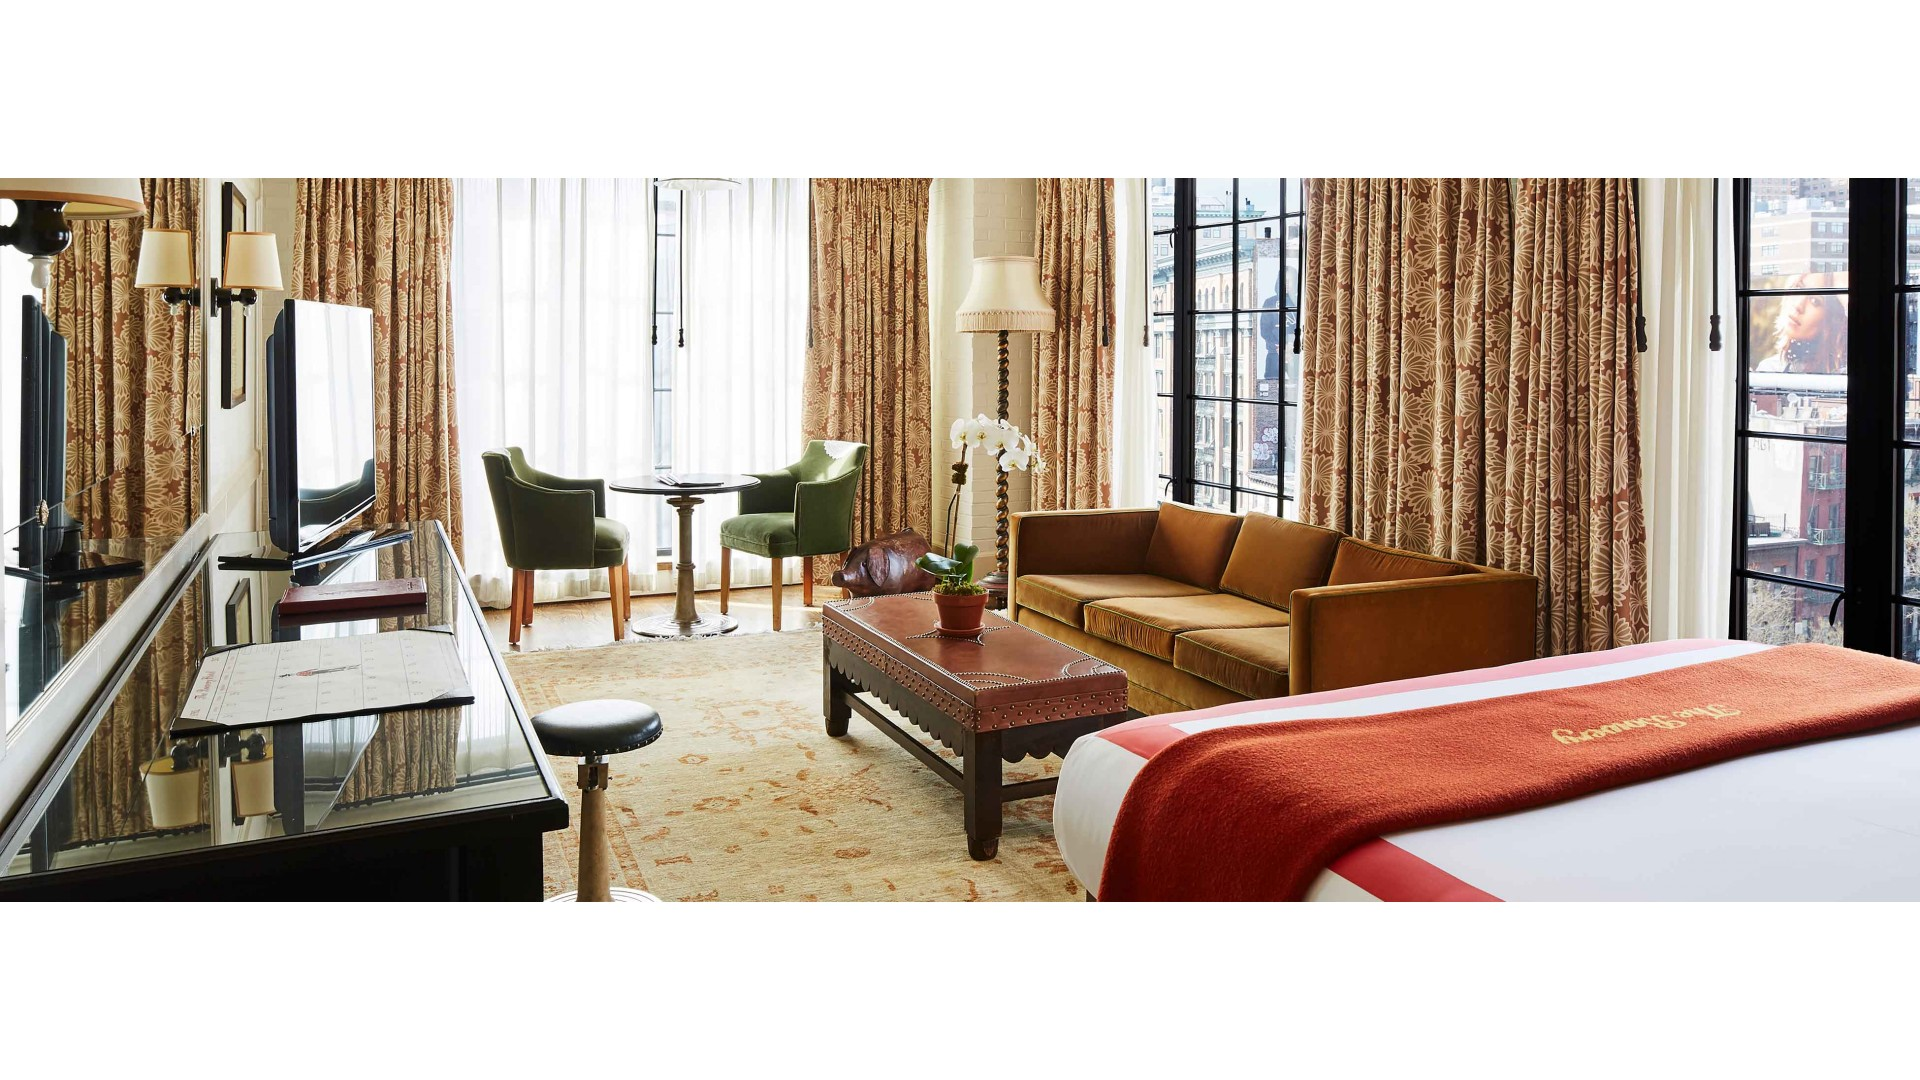 Watch The Bowery Hotel, New York video